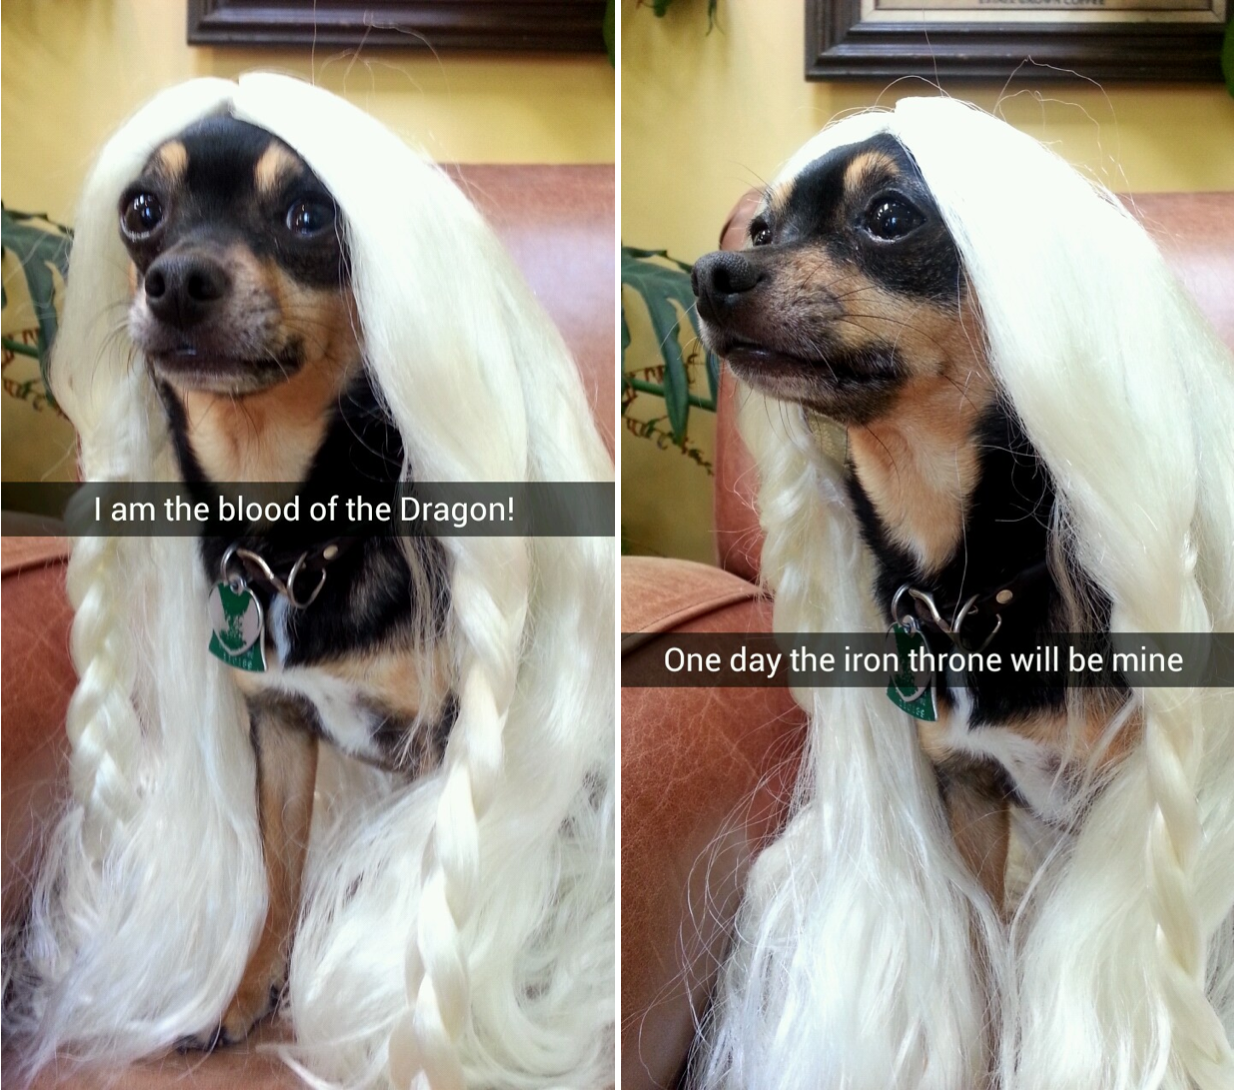 """Chihuahua with blonde Kahleesi wig. Caption """"One day the iron throne will be mine."""""""